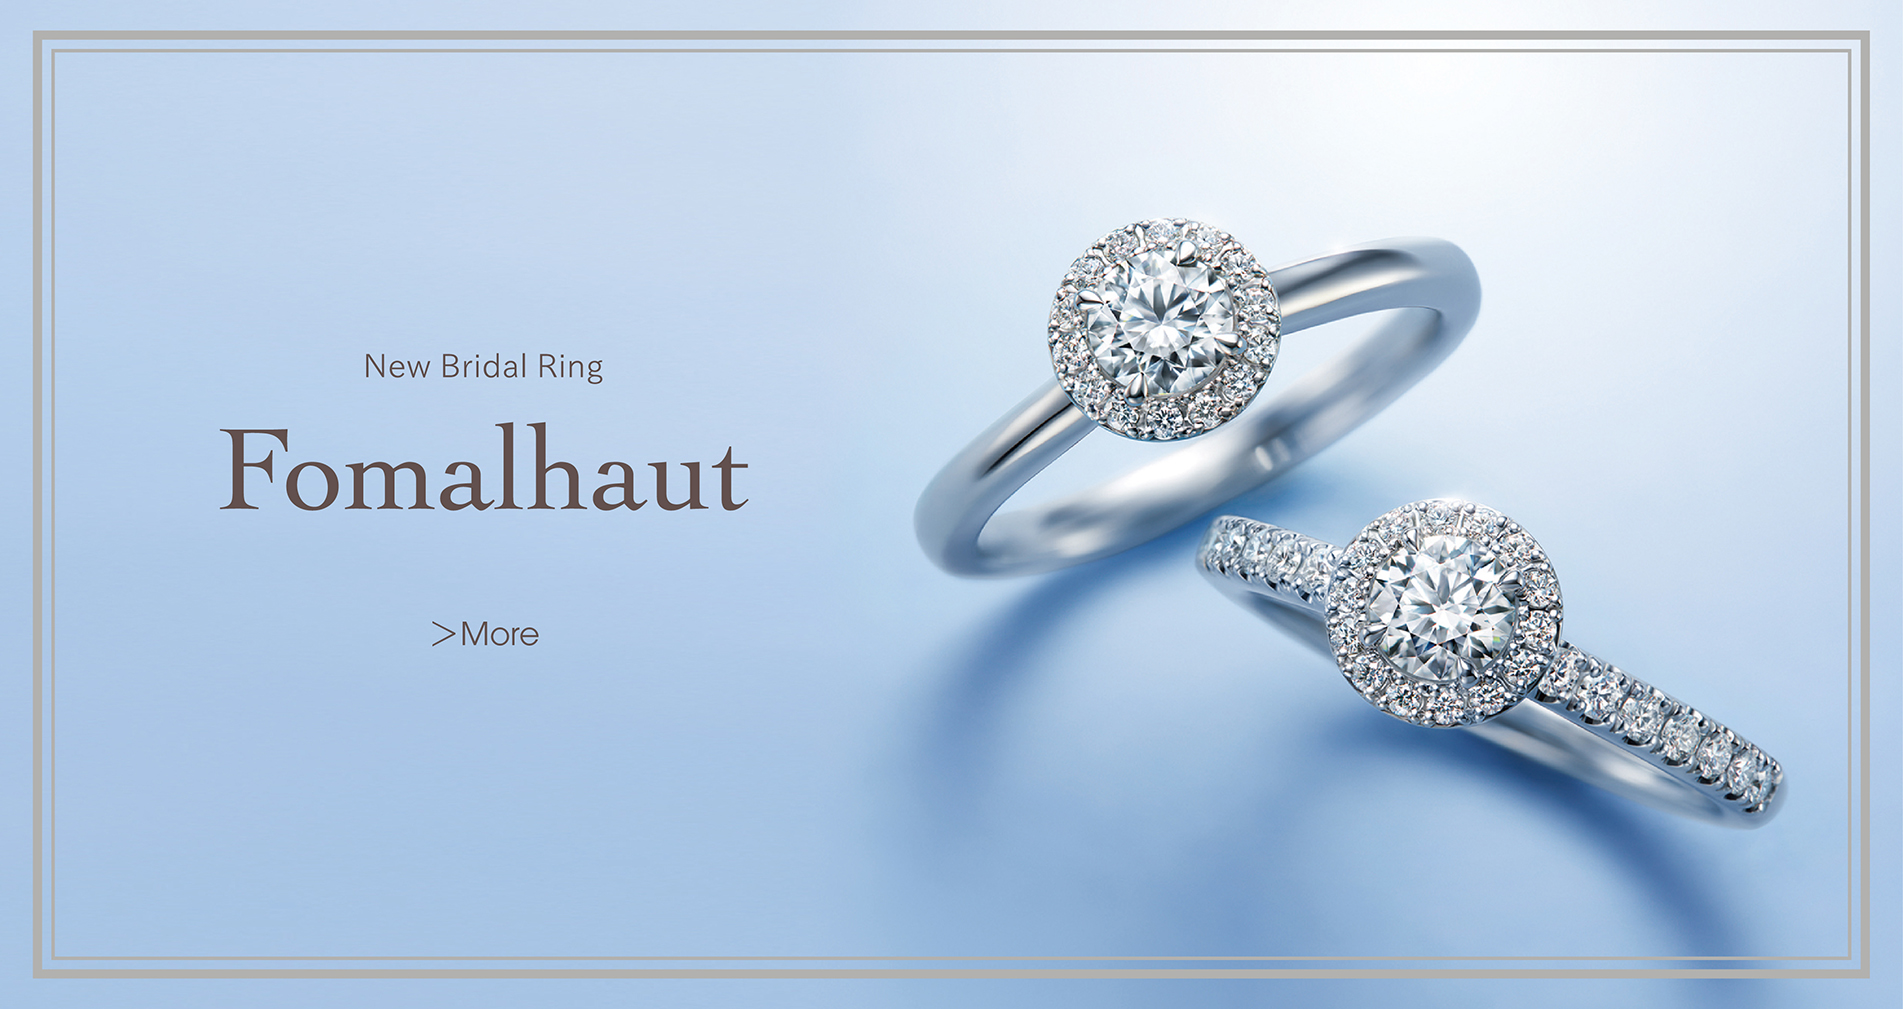 New Bridal Ring Fomalhaut